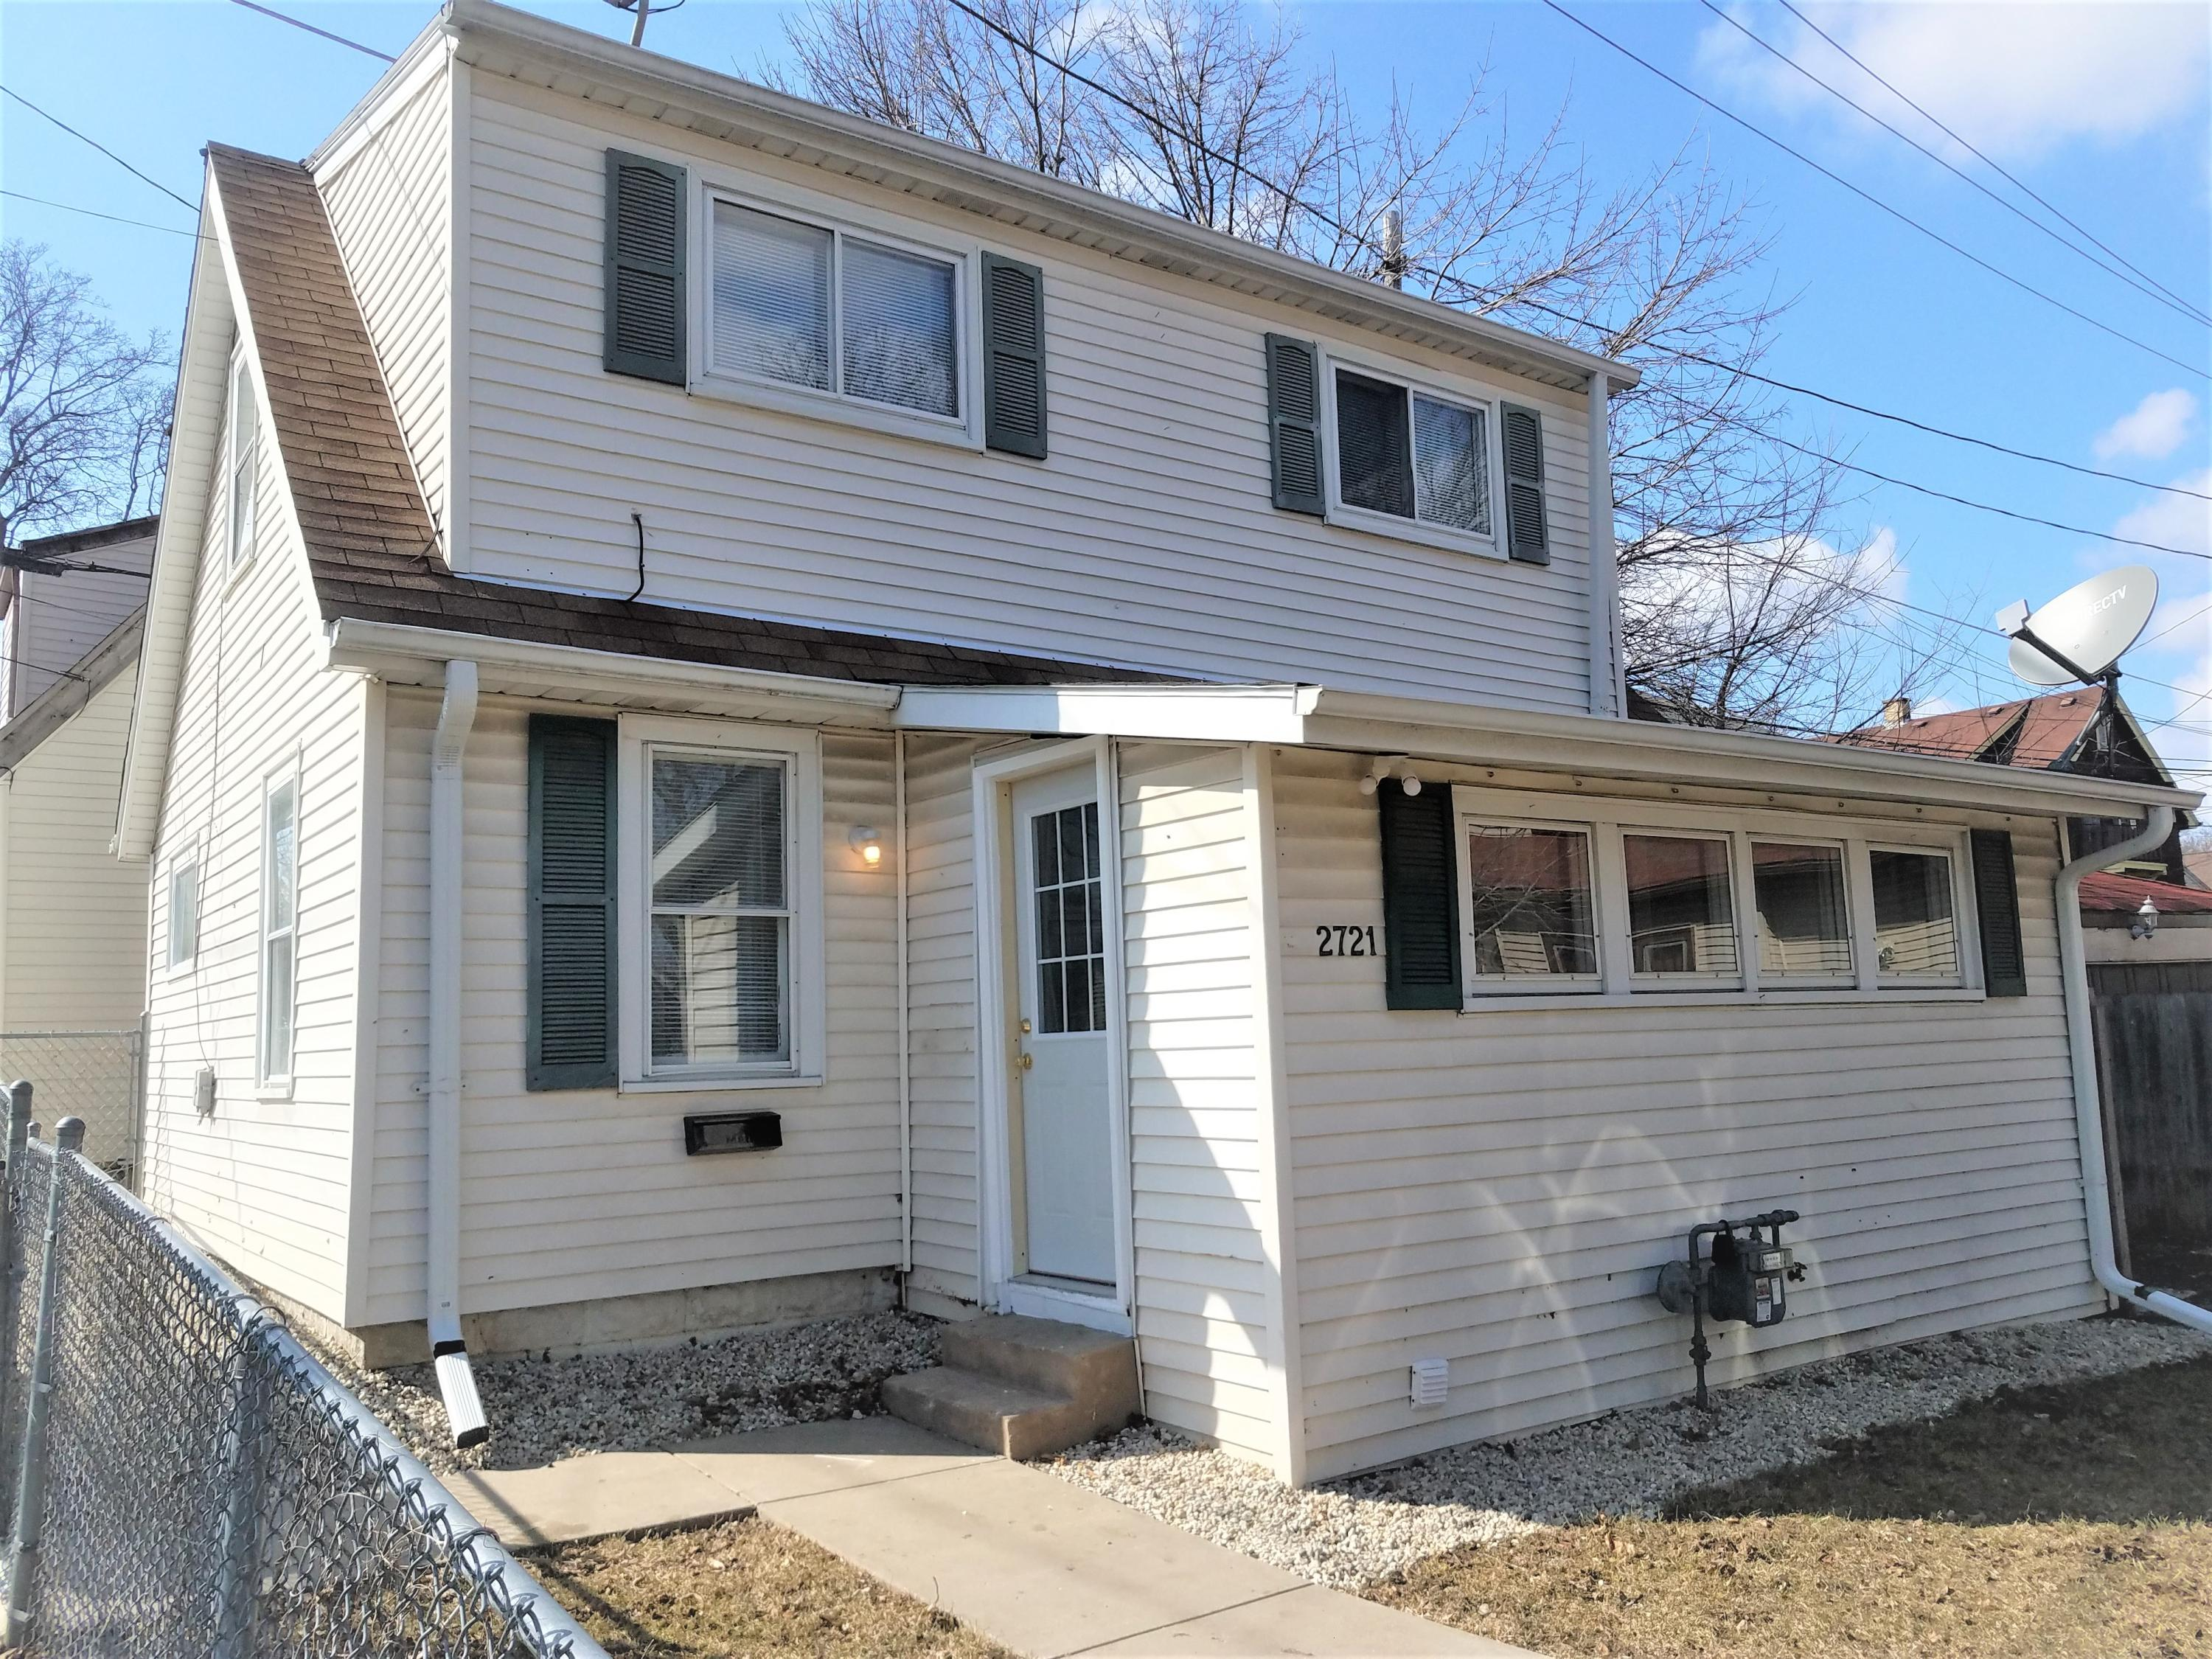 2721 56th ST, Milwaukee, Wisconsin 53210, 3 Bedrooms Bedrooms, ,1 BathroomBathrooms,Single-Family,For Sale,56th ST,1627001